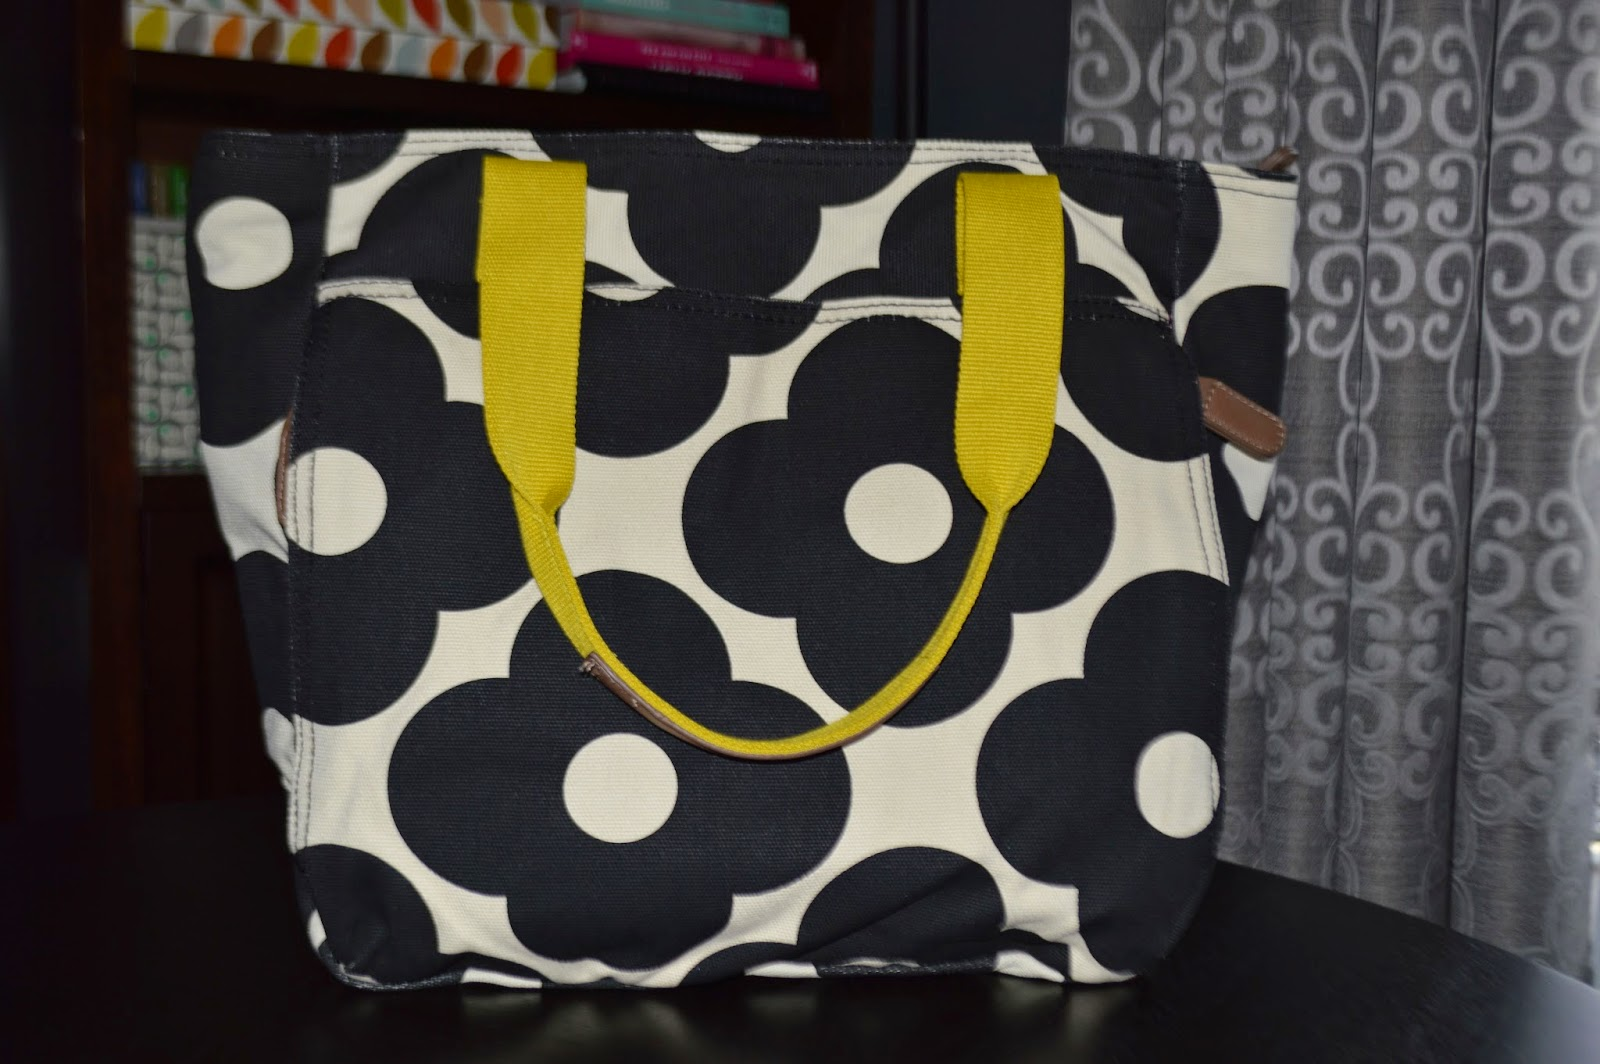 06a6aecf8f4f The bag features a print very similar to the Giant Abacus Flower Print